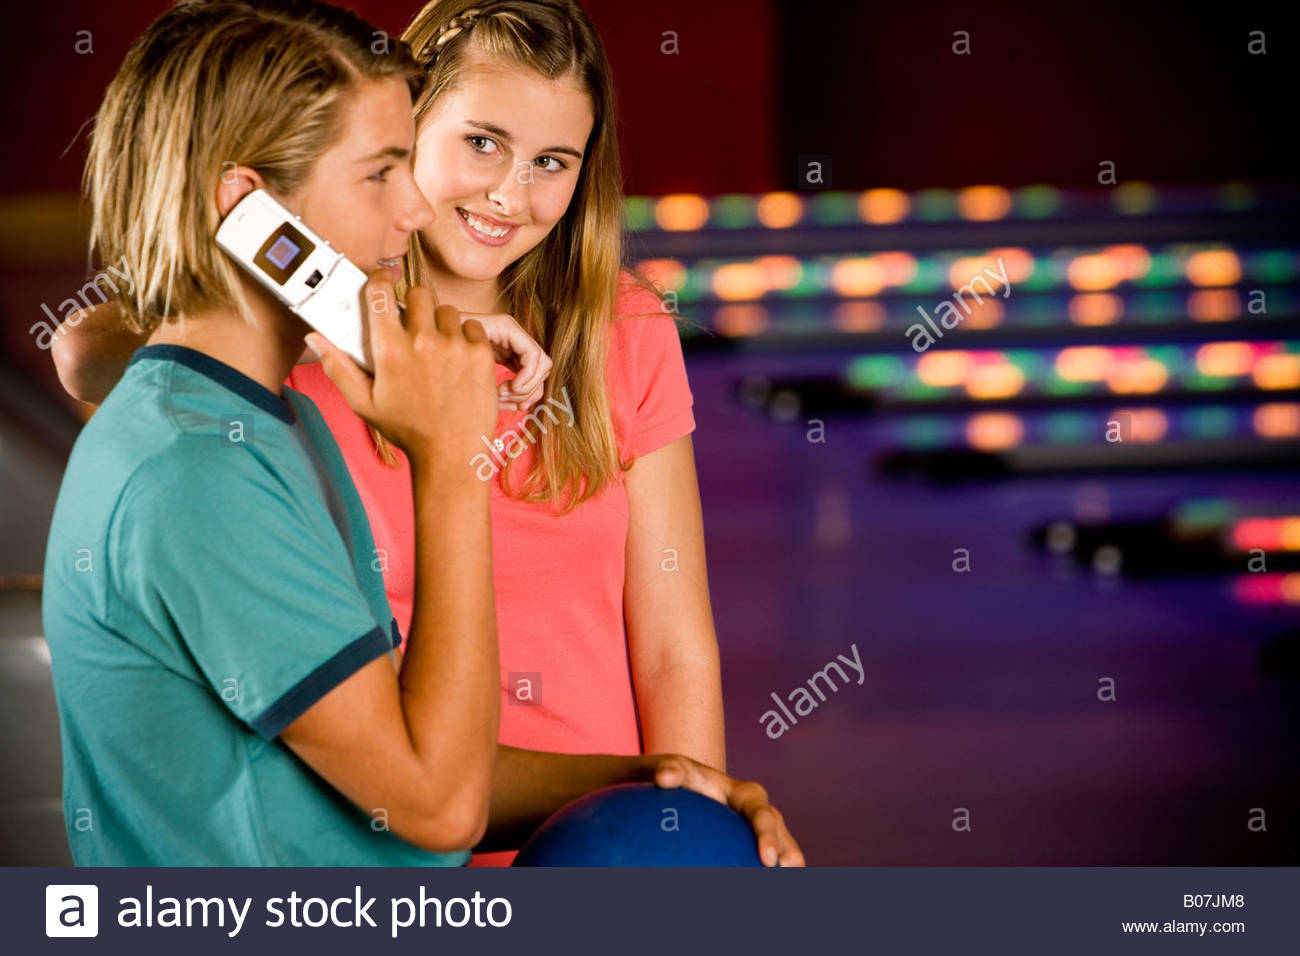 Teenage boy and girl in a bowling alley, boy talking on mobile phone - Stock Image